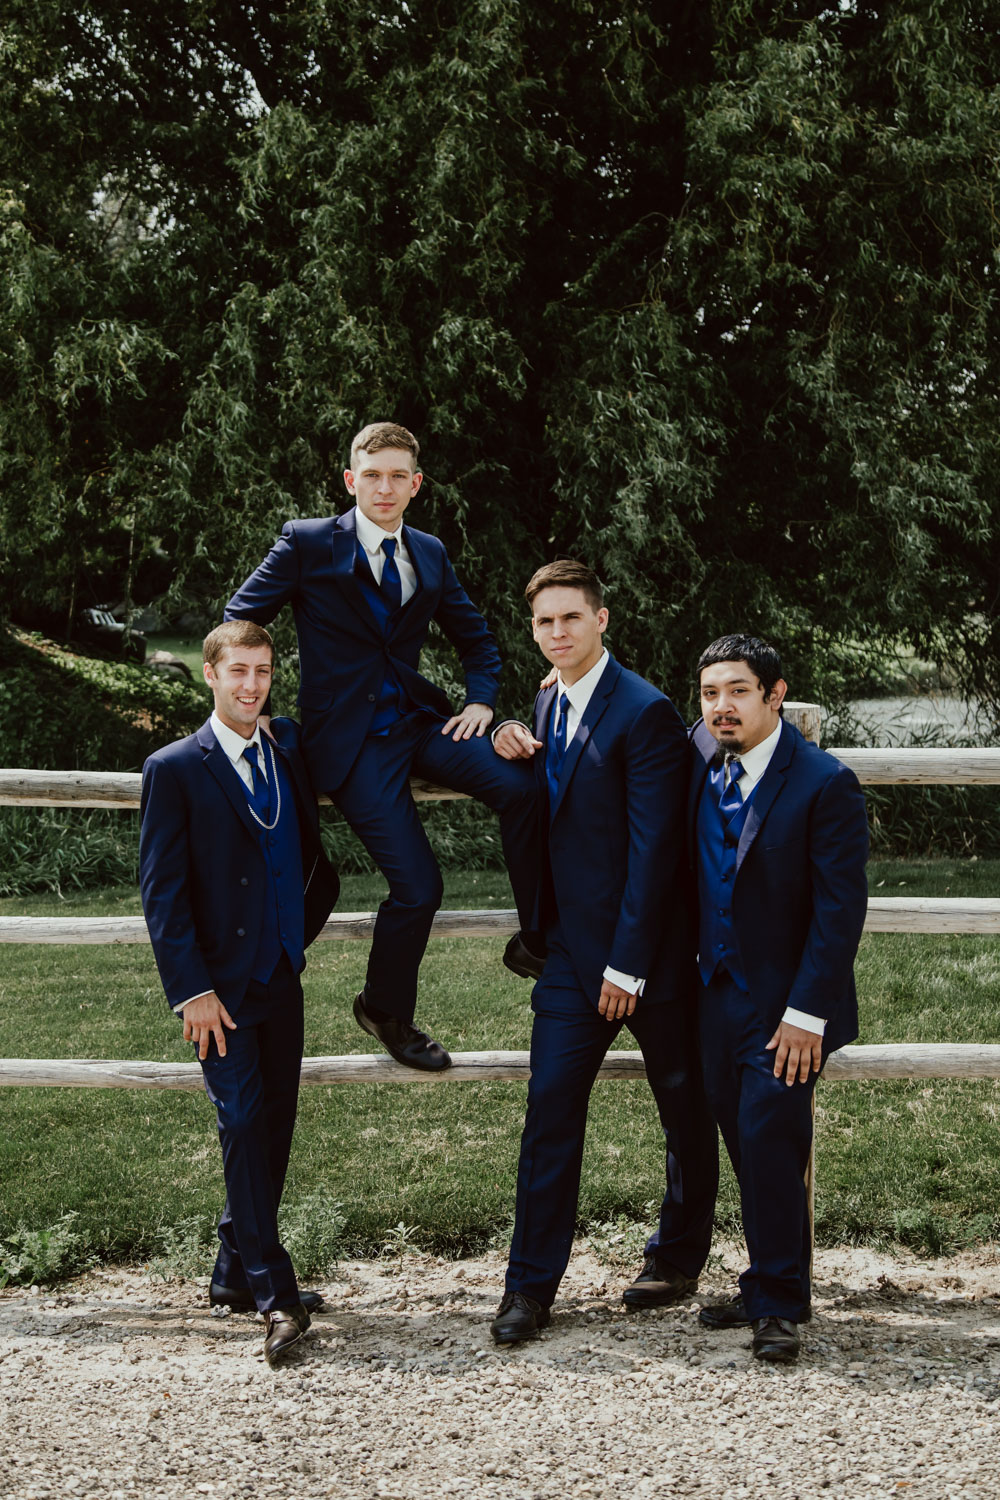 Boise Wedding and Engagement Photographer portrait of Groomsmen at the Alpine Pond Event Center.